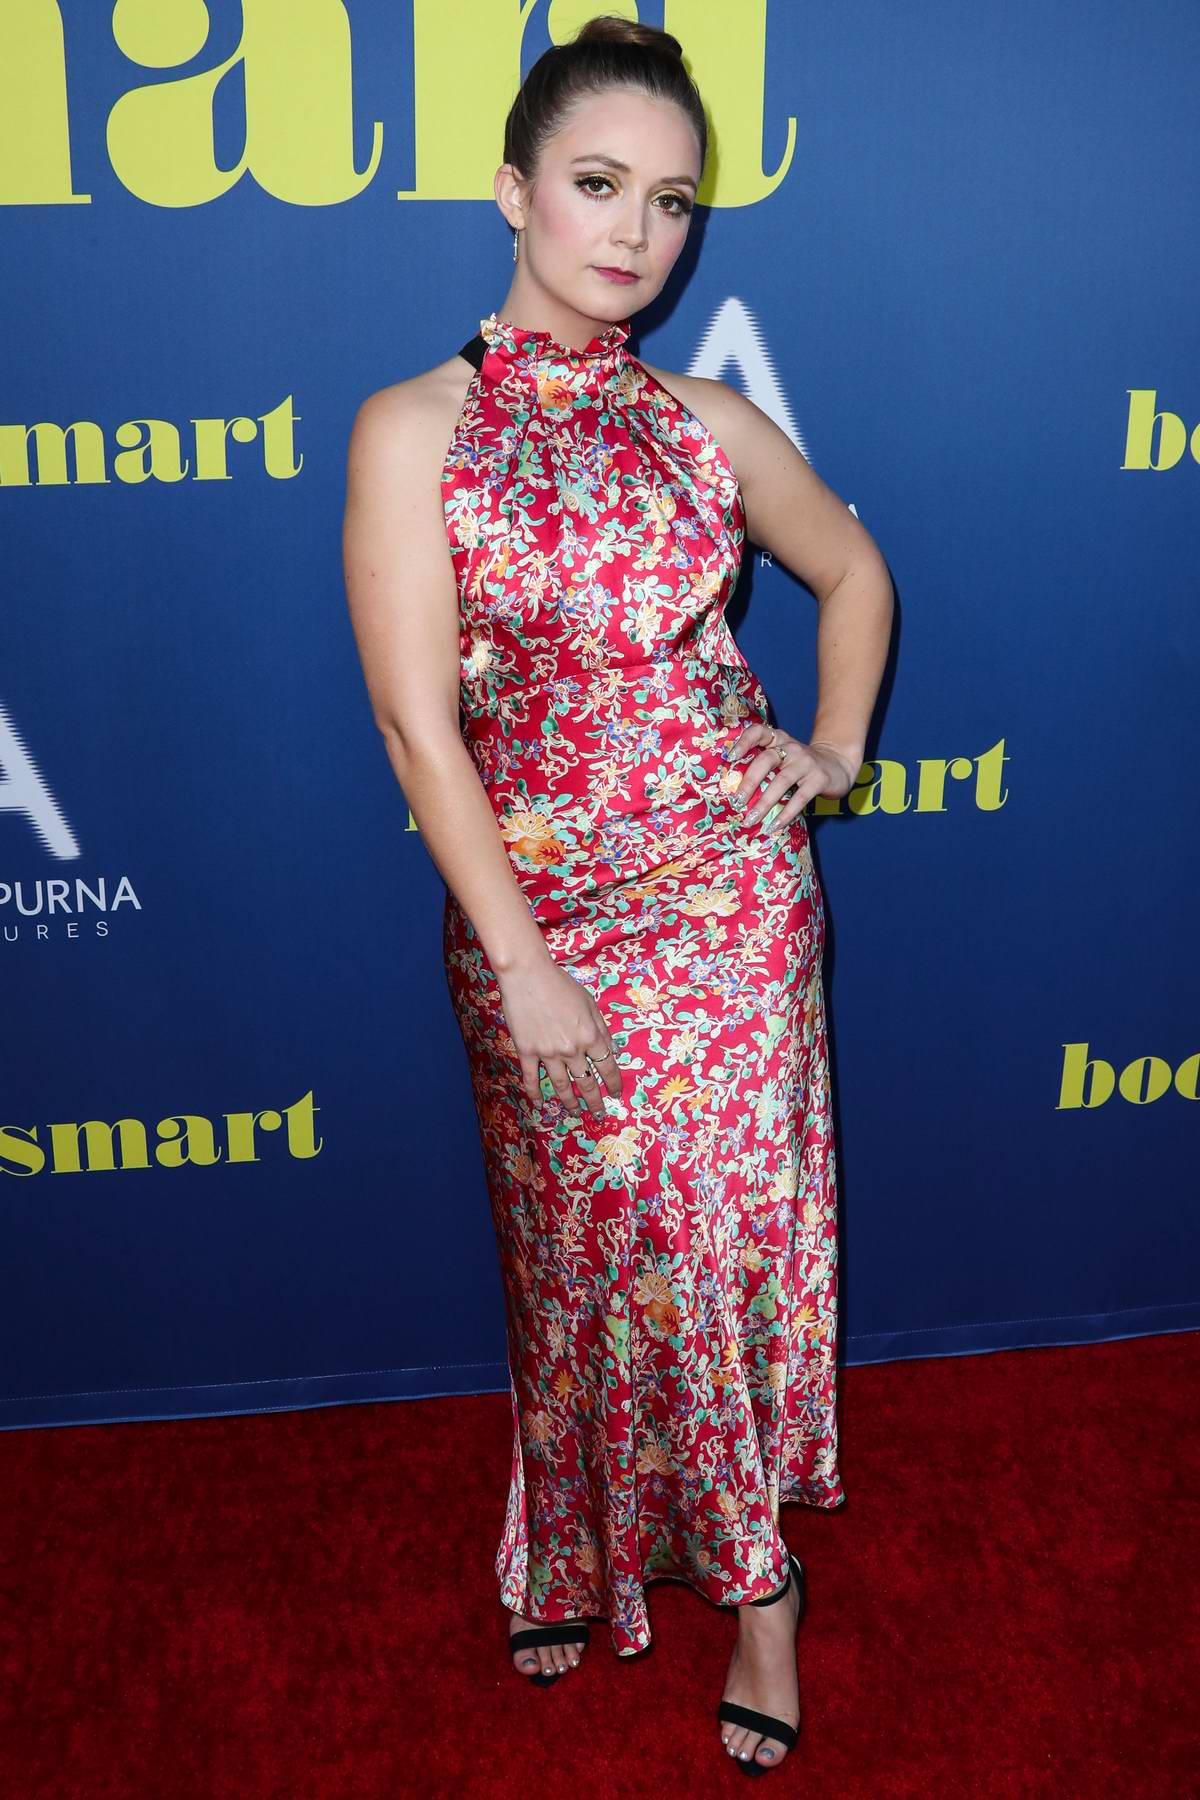 Billie Lourd attends the special screening of 'Booksmart' at Ace Hotel in Los Angeles